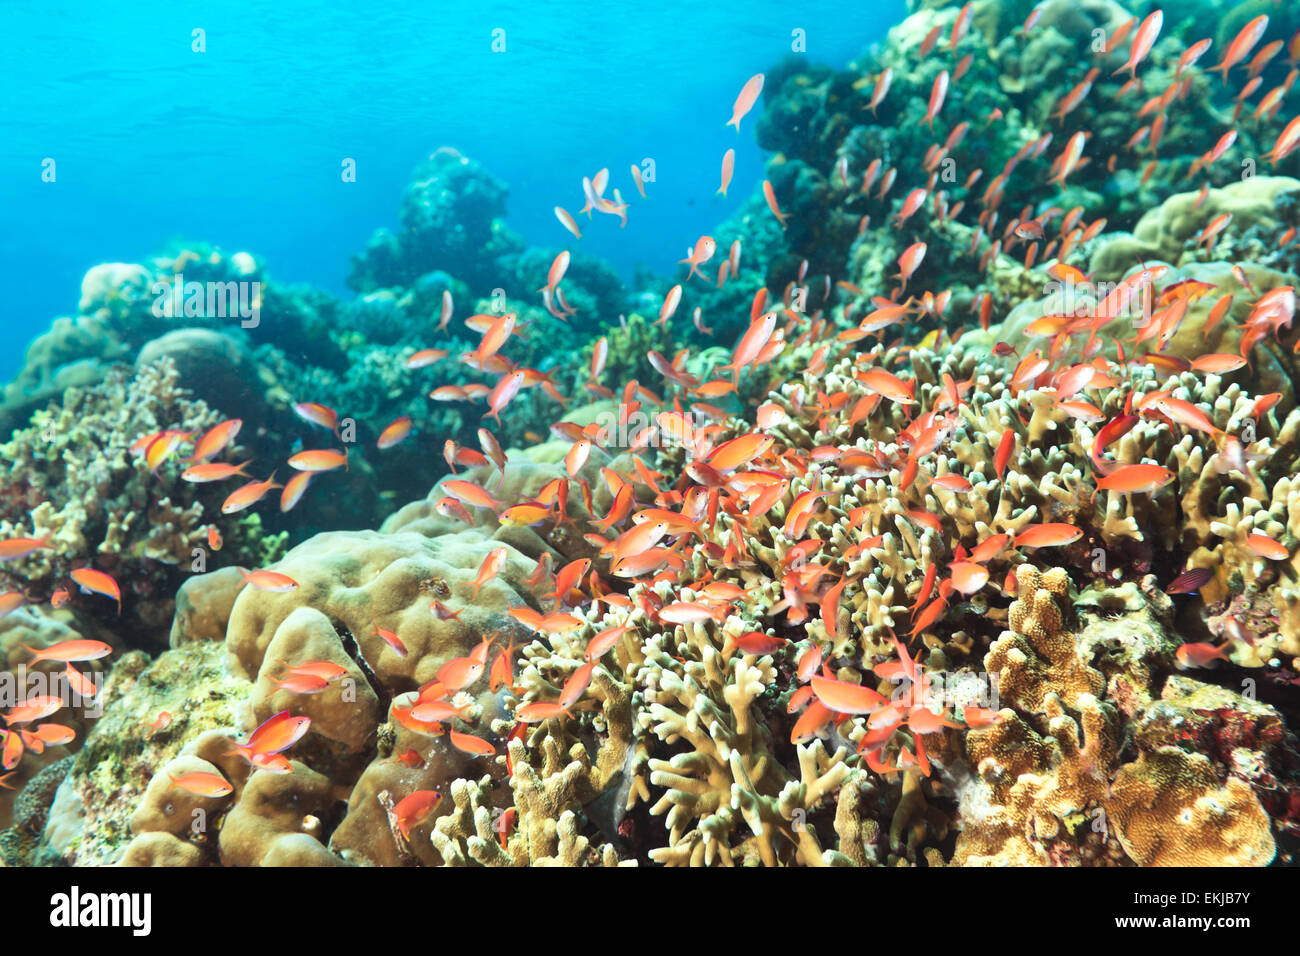 Beautiful view of the coral reef with fishes - Stock Image